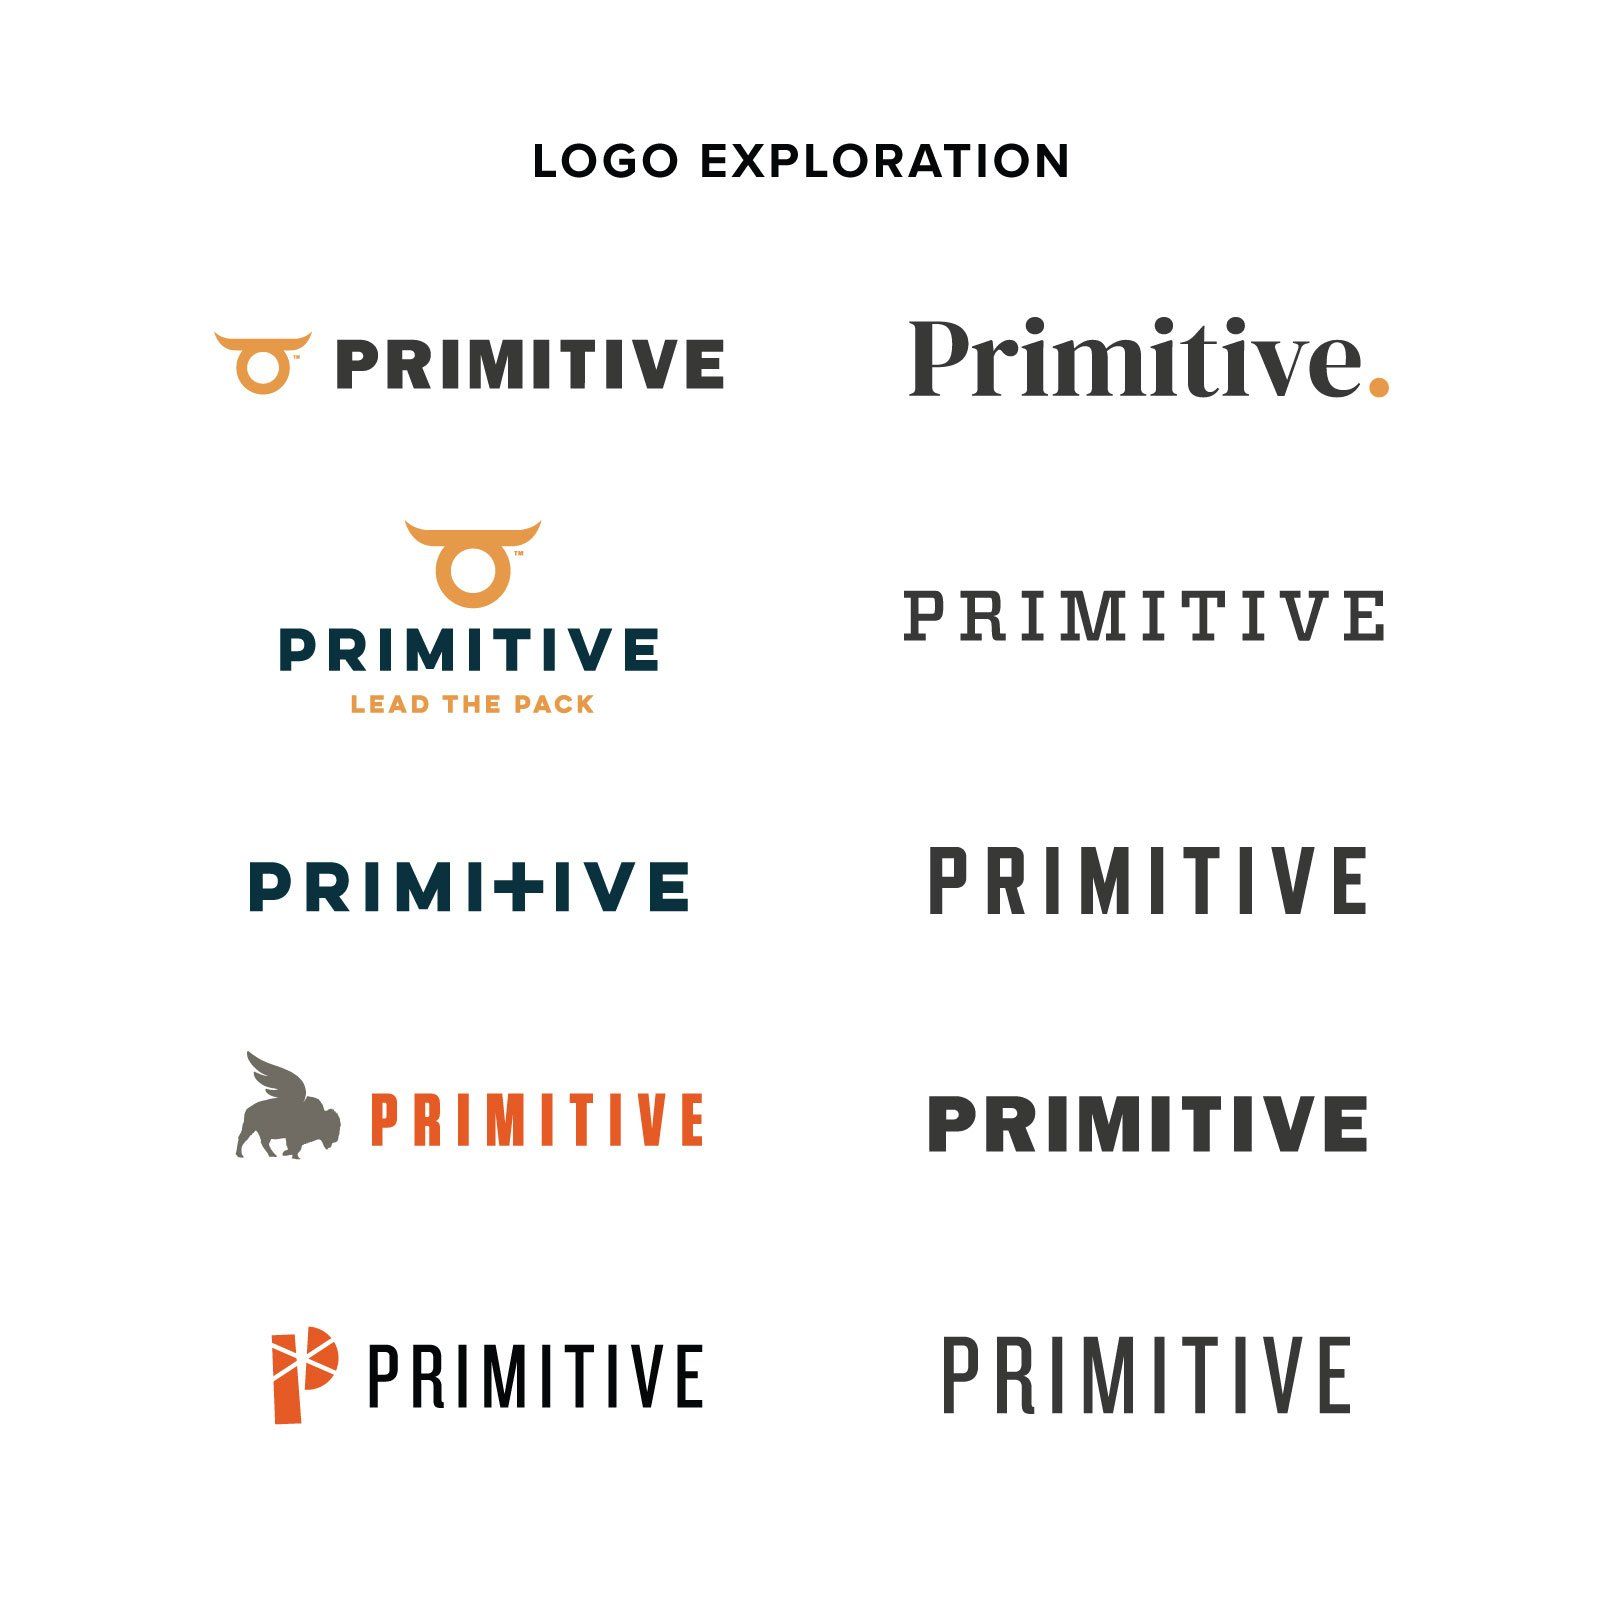 Primitive Logo Exploration